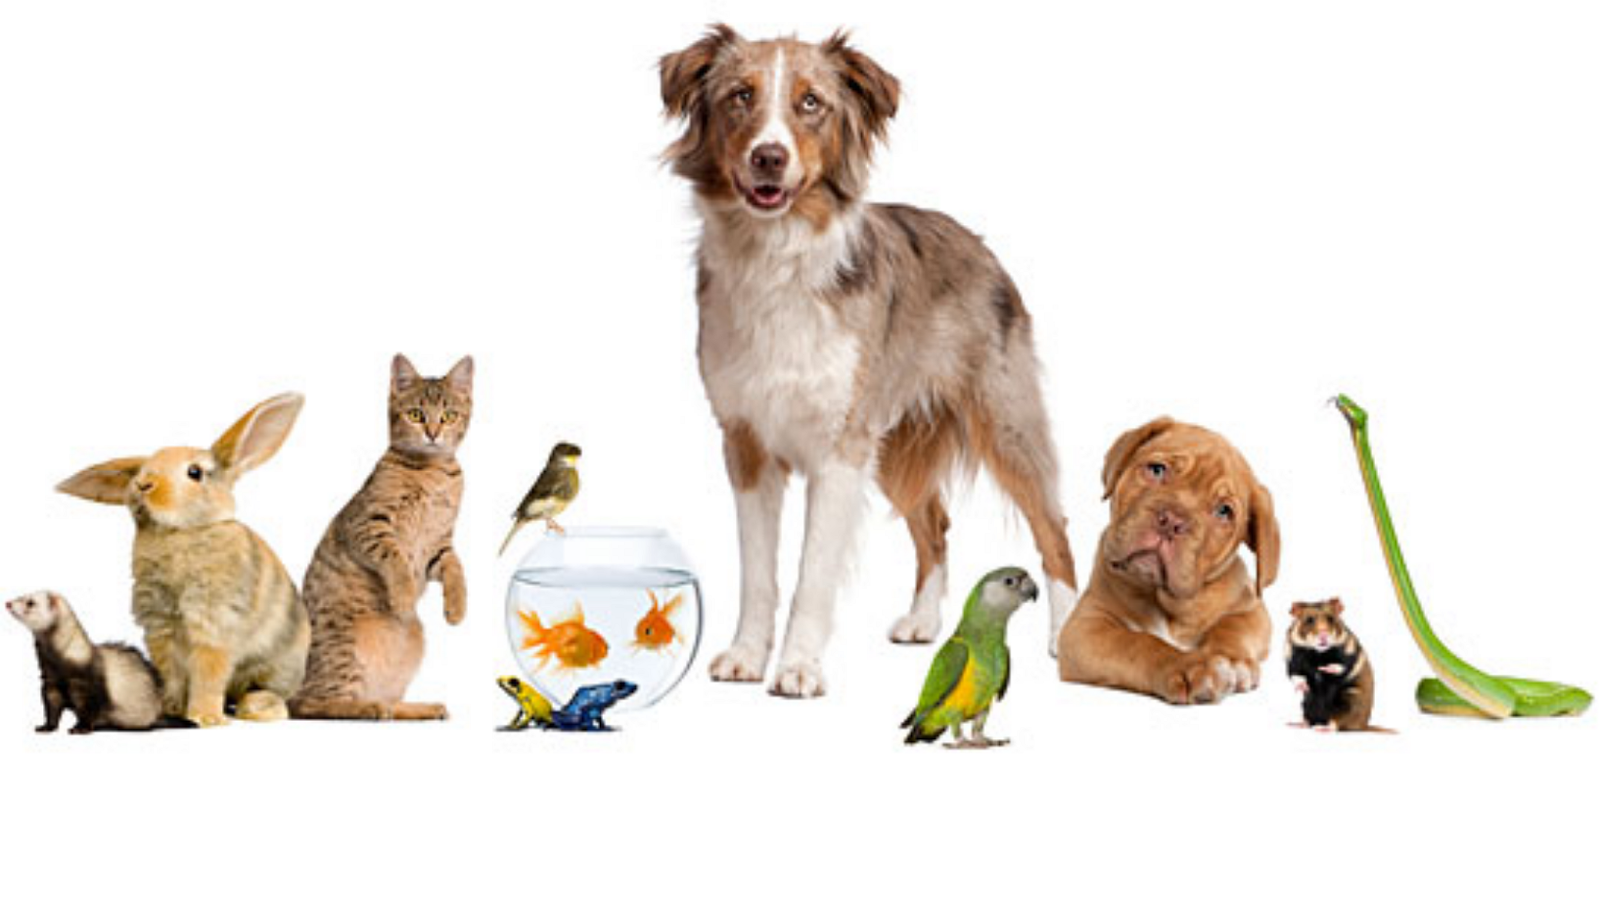 Pet Png Hd Transparent Pet Hd Png Images 1299605 Png Images Pngio